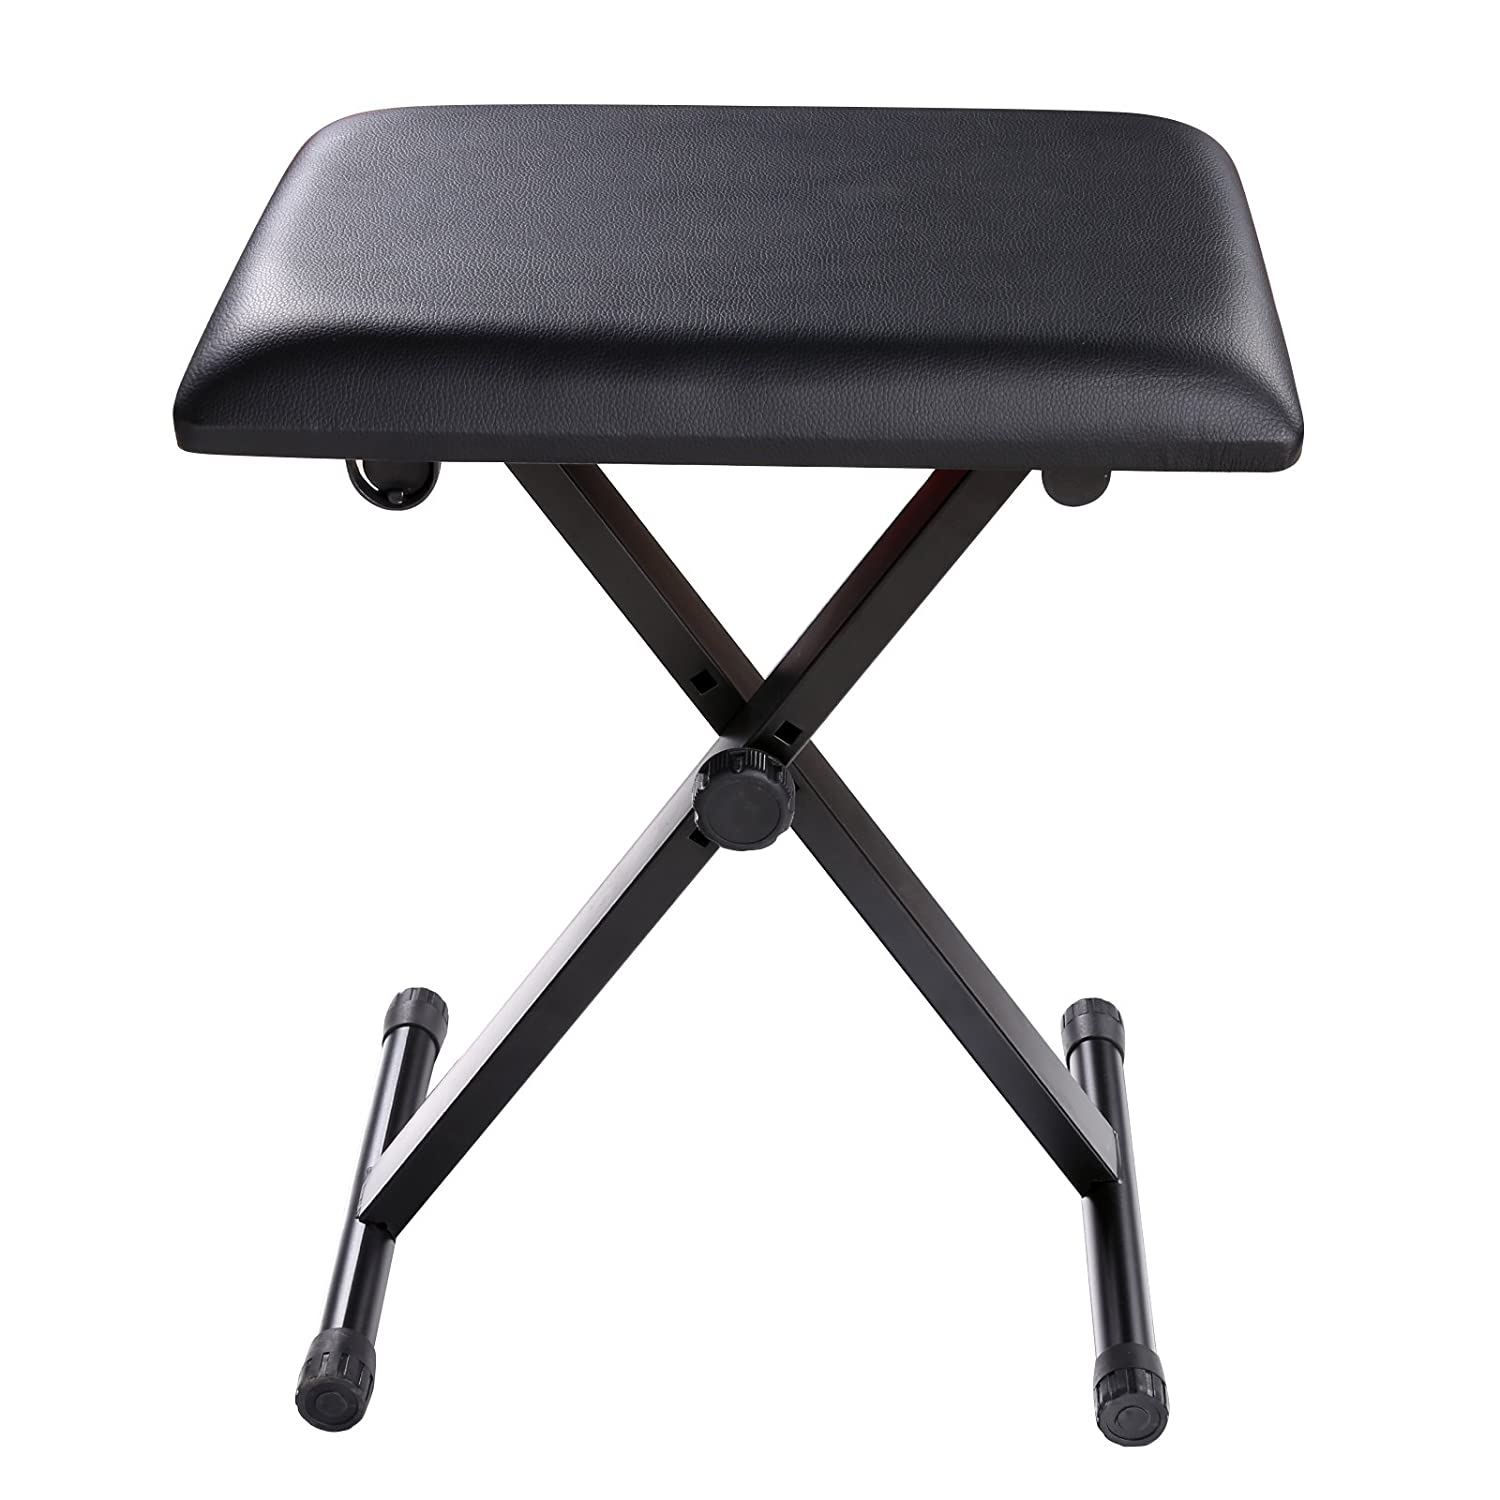 Gracelove Adjustable Piano Keyboard Bench Leather Padded Seat Folding Stool Chair (Black) 4334393873